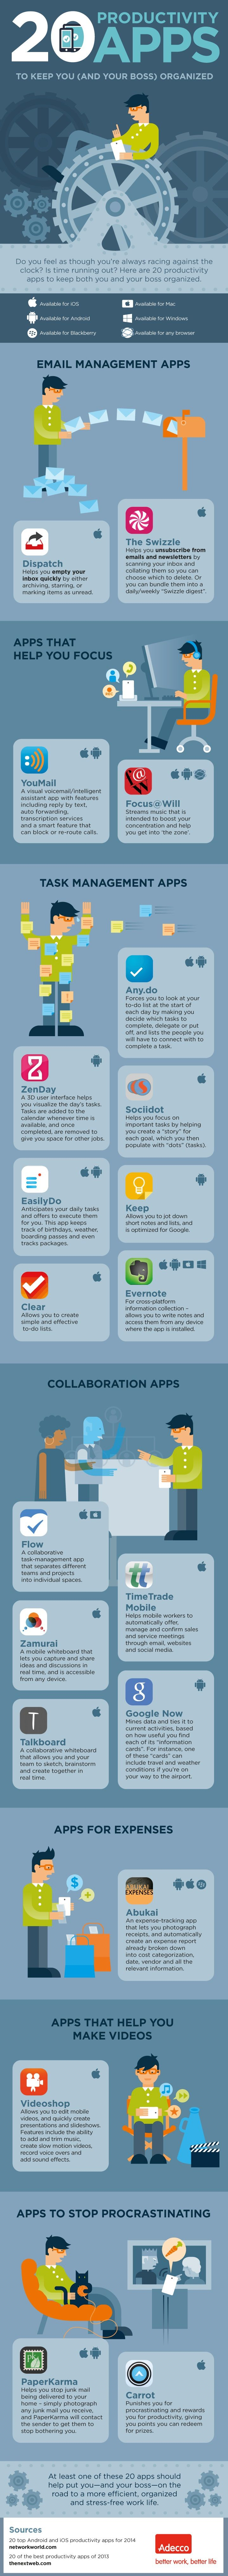 20 Productivity apps